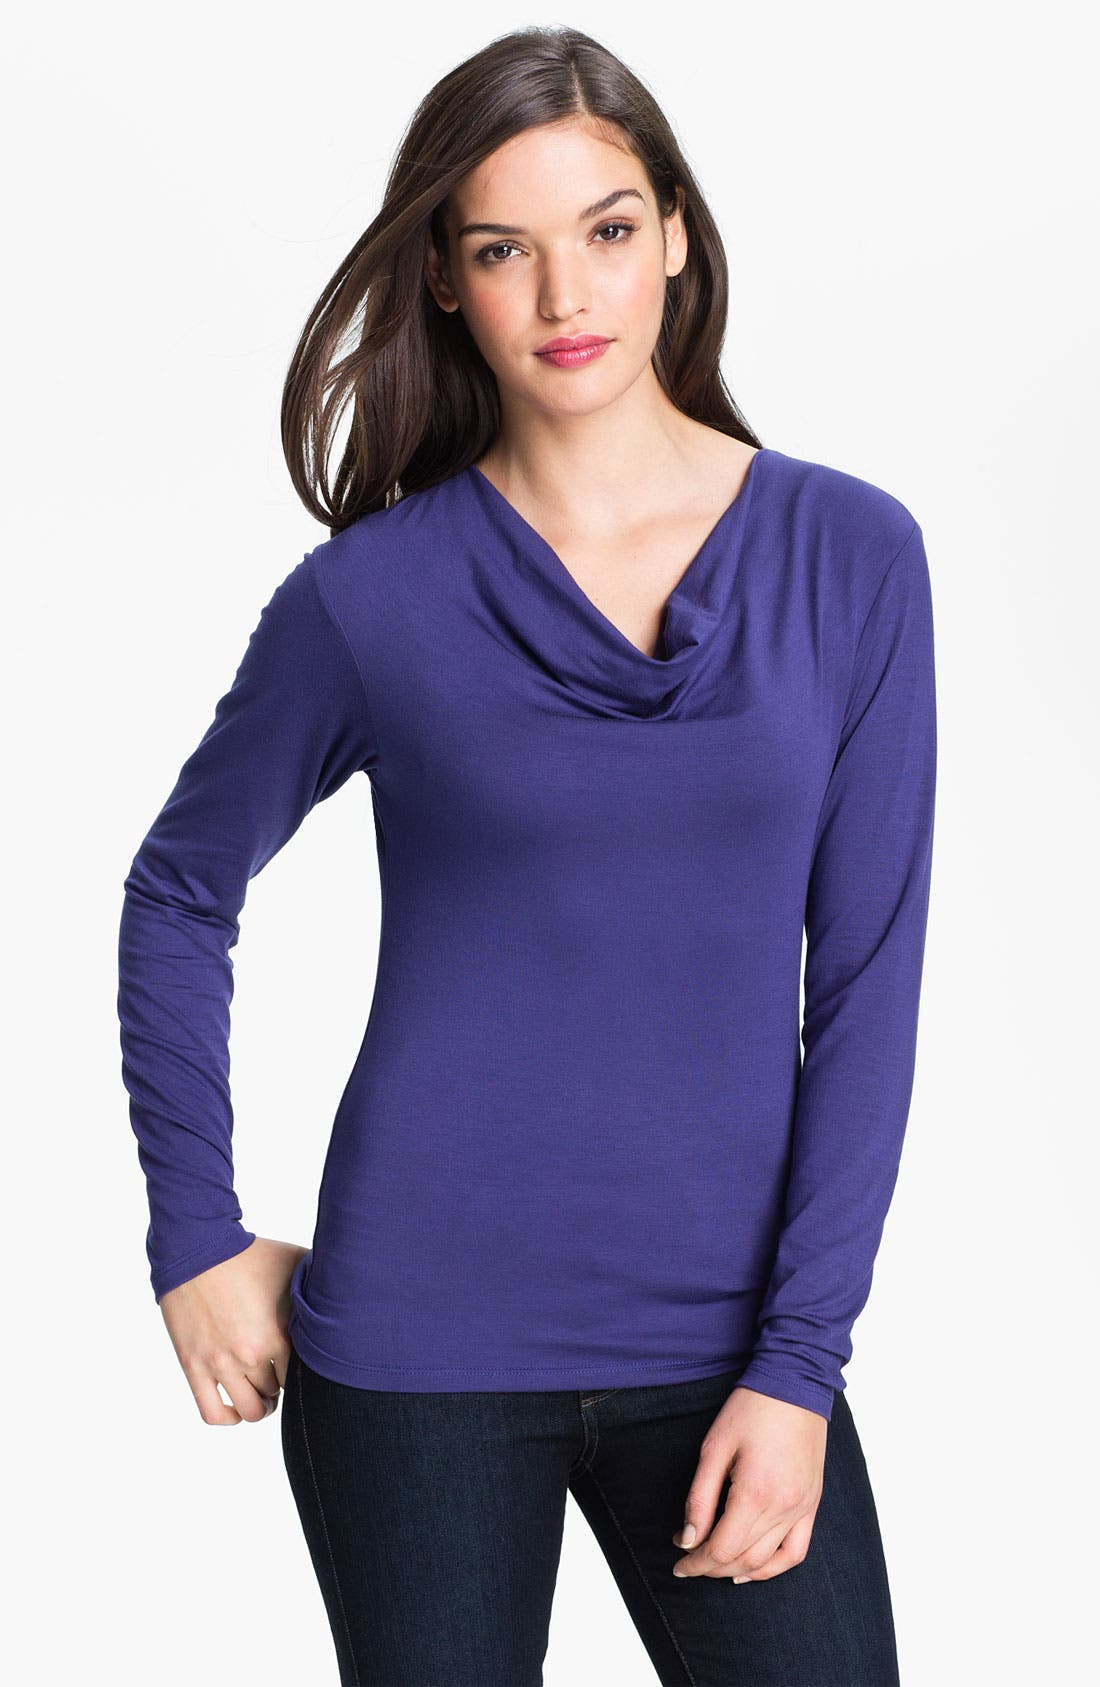 Main Image - Purity Cowl Neck Long Sleeve Top